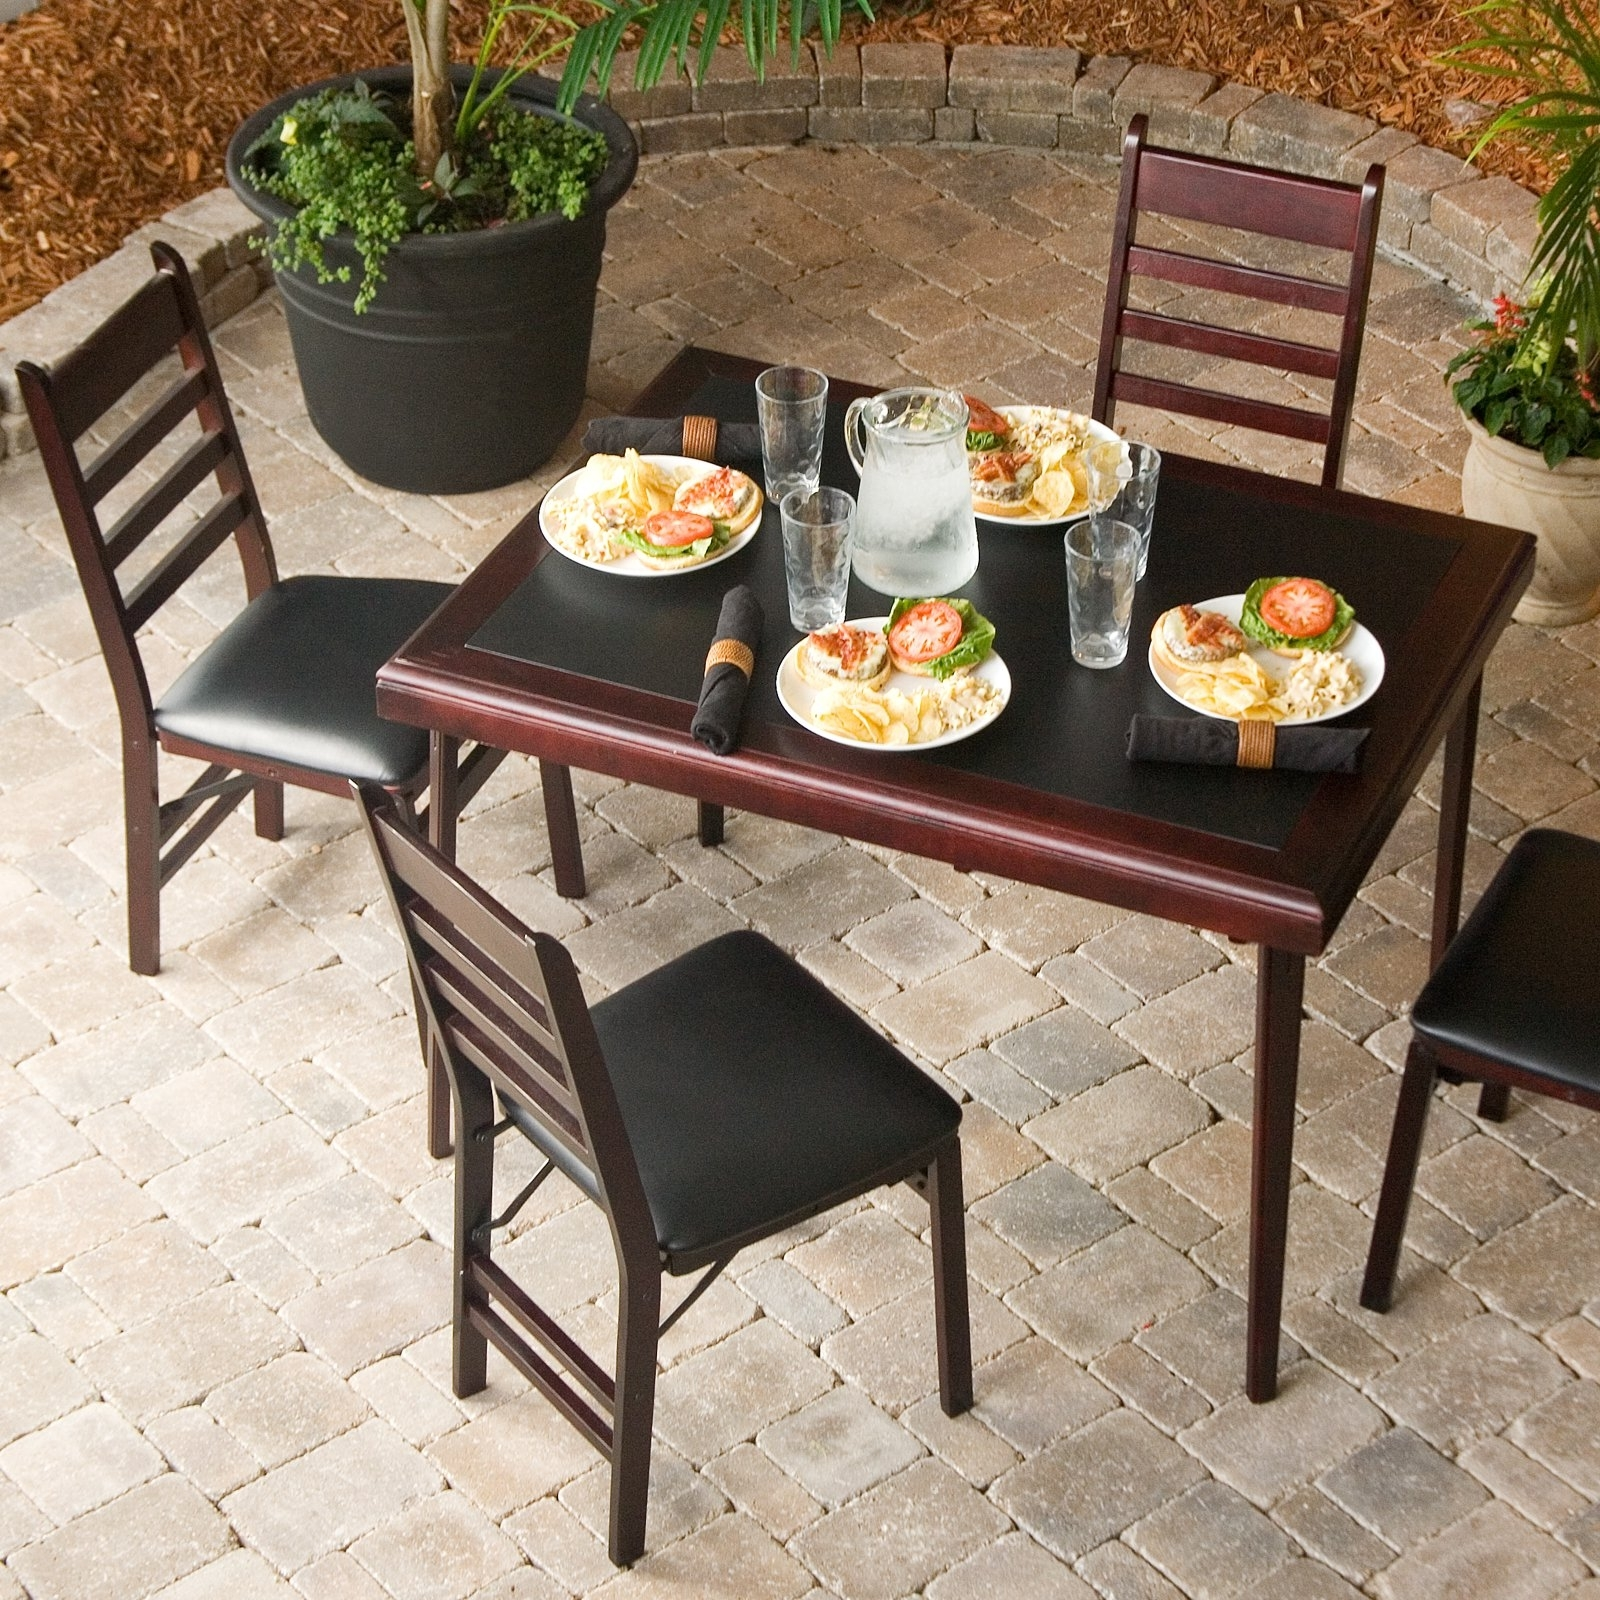 Cosco Fold Up Outdoor Patio Table (Image 4 of 20)